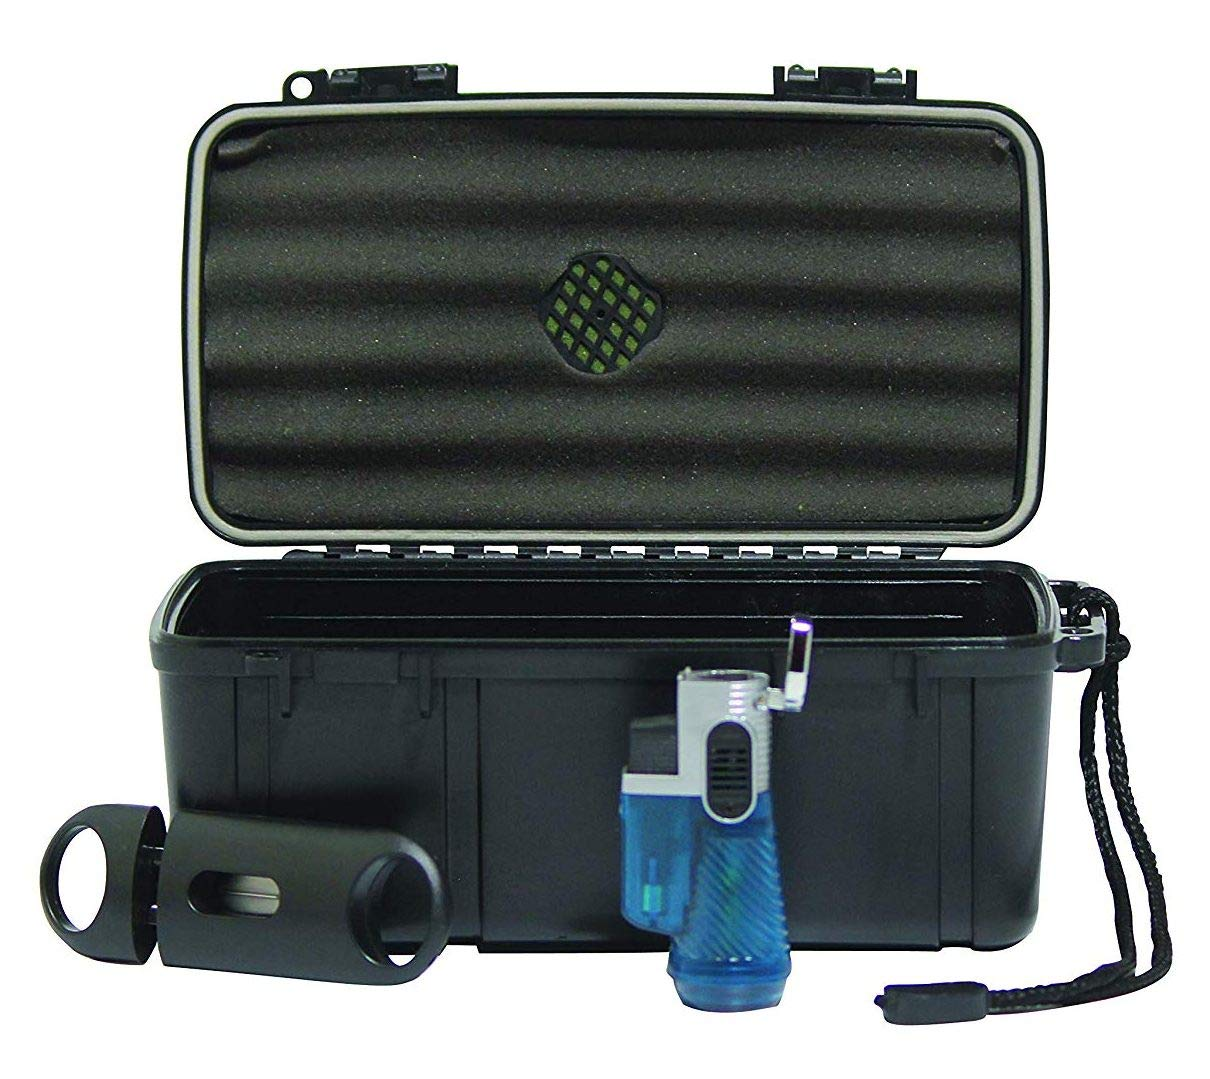 F.e.s.s Fess Trident Medium Gift Set Holds up to 15ct Travel Cigar Humidor Waterproof Holder Case With 3Torch/V-Cut Cigar Cutter Set by F.e.s.s. Products